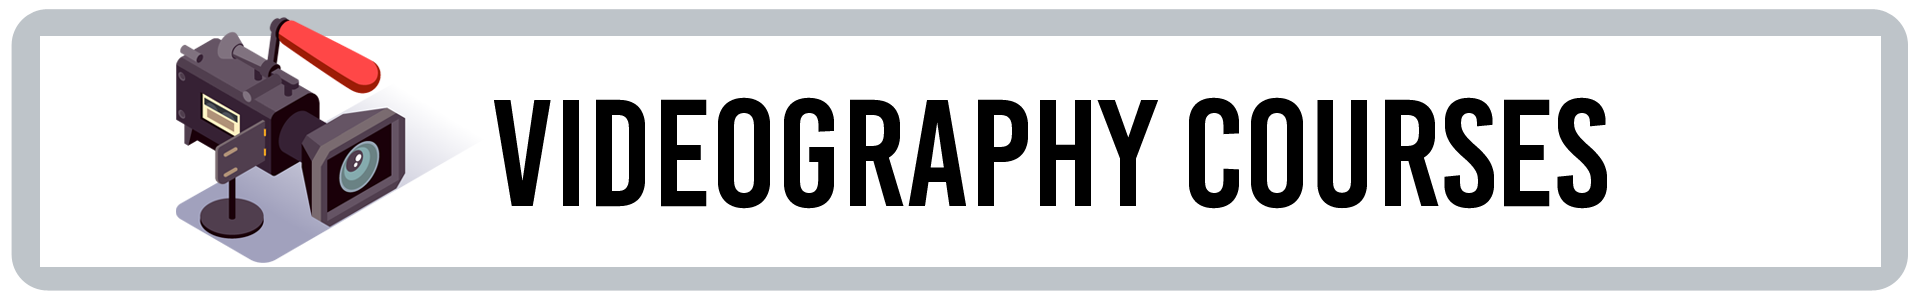 Videographt Courses by WolFang Digital